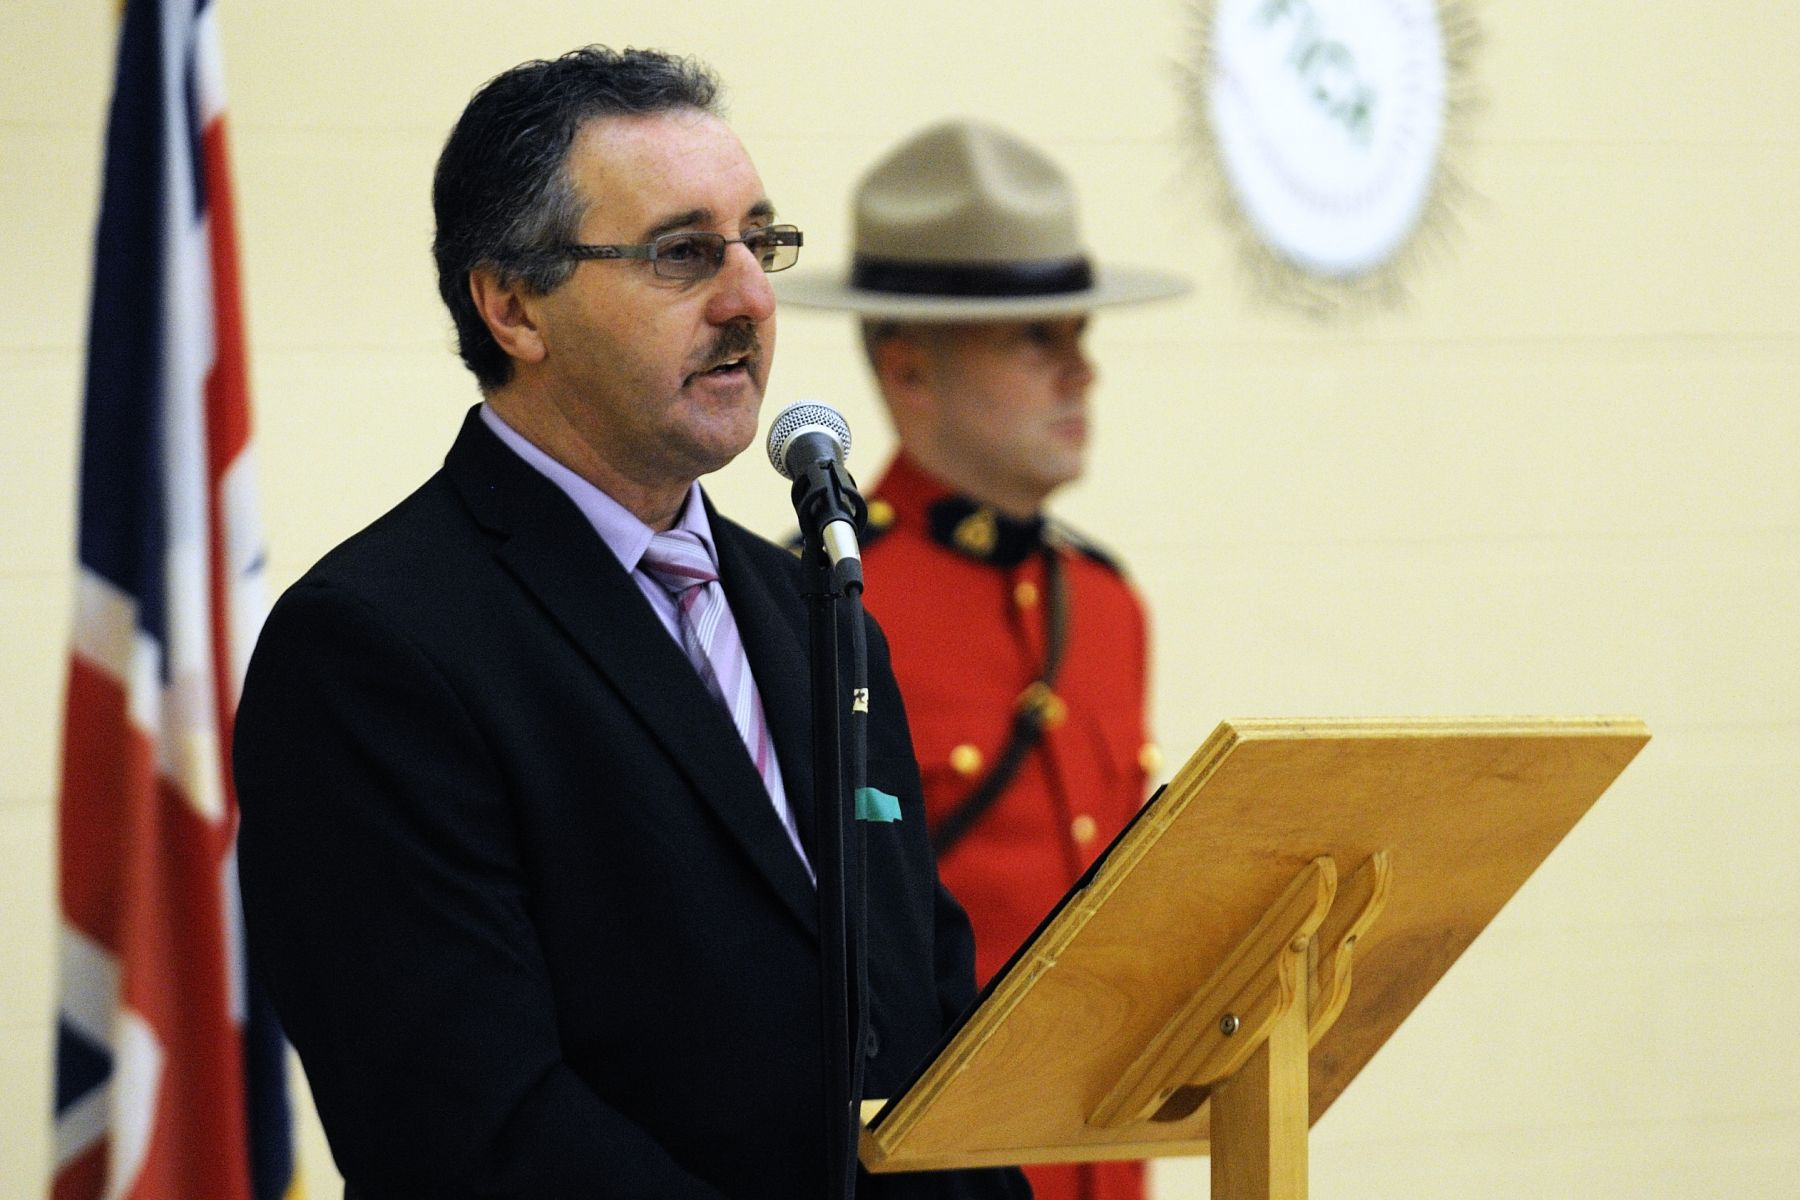 His Worship Gerard Foley, Mayor of the Town of Fogo Island, officially welcomed Their Excellencies to his hometown and invited the Governor General to say a few words.